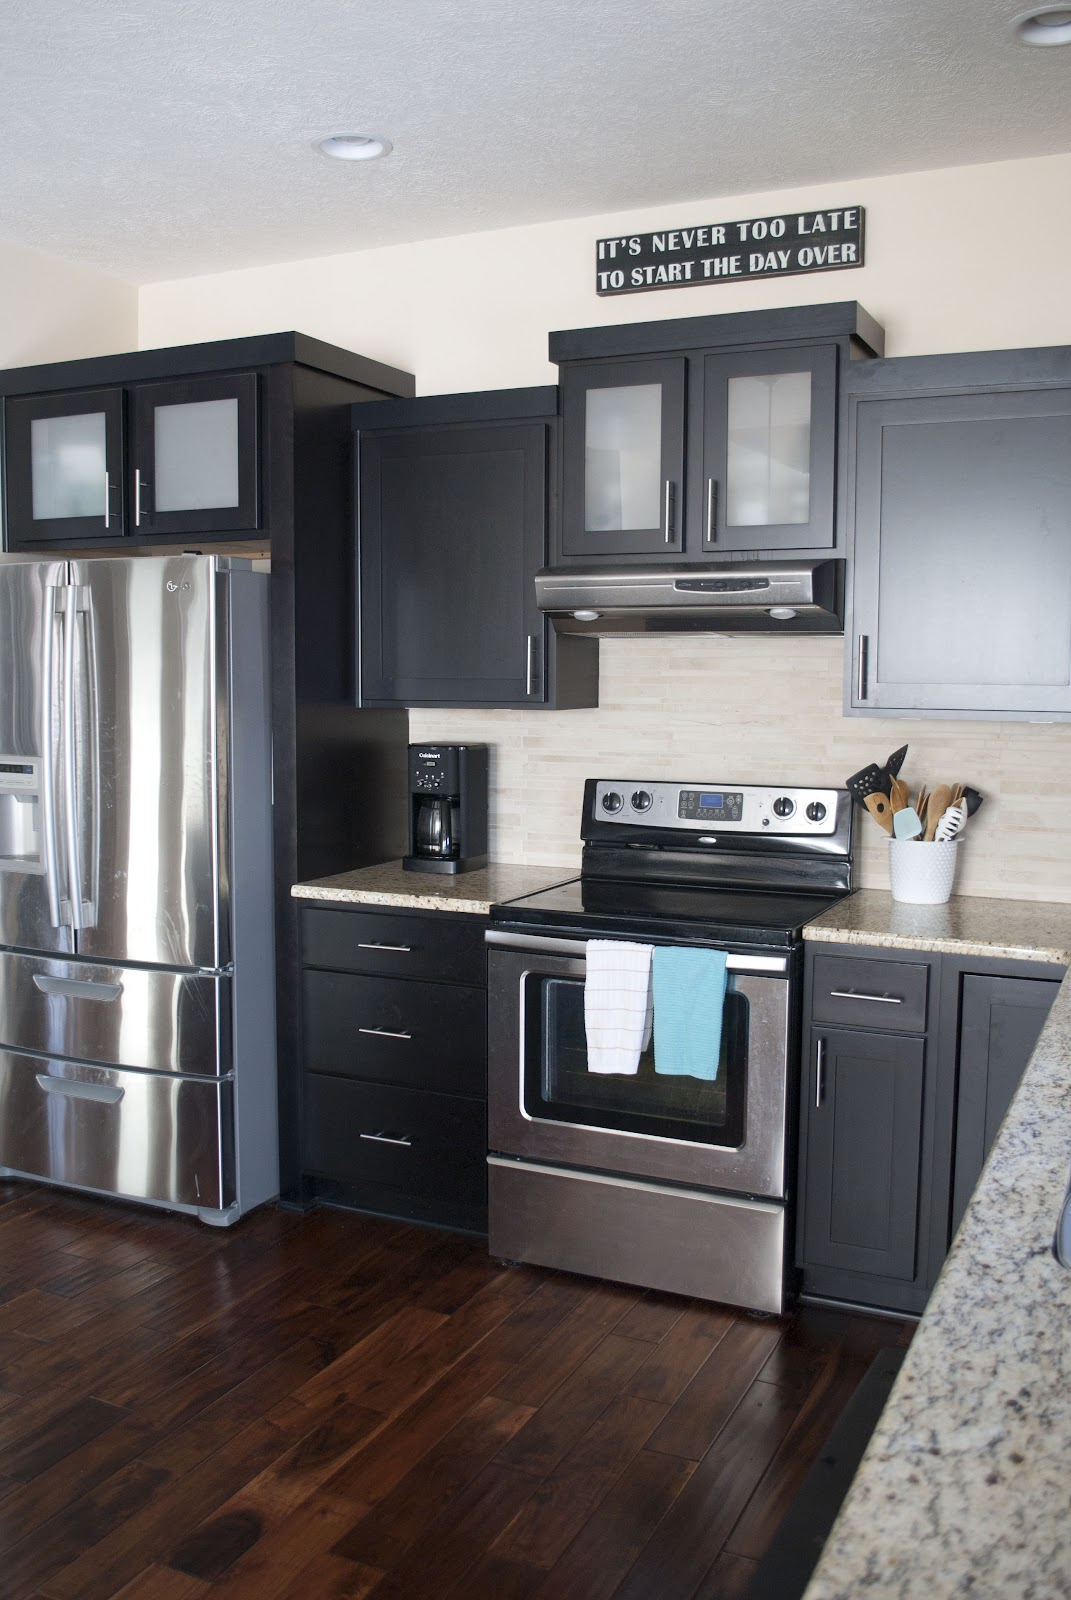 How To Clean Greasy Laminate Kitchen Cabinets